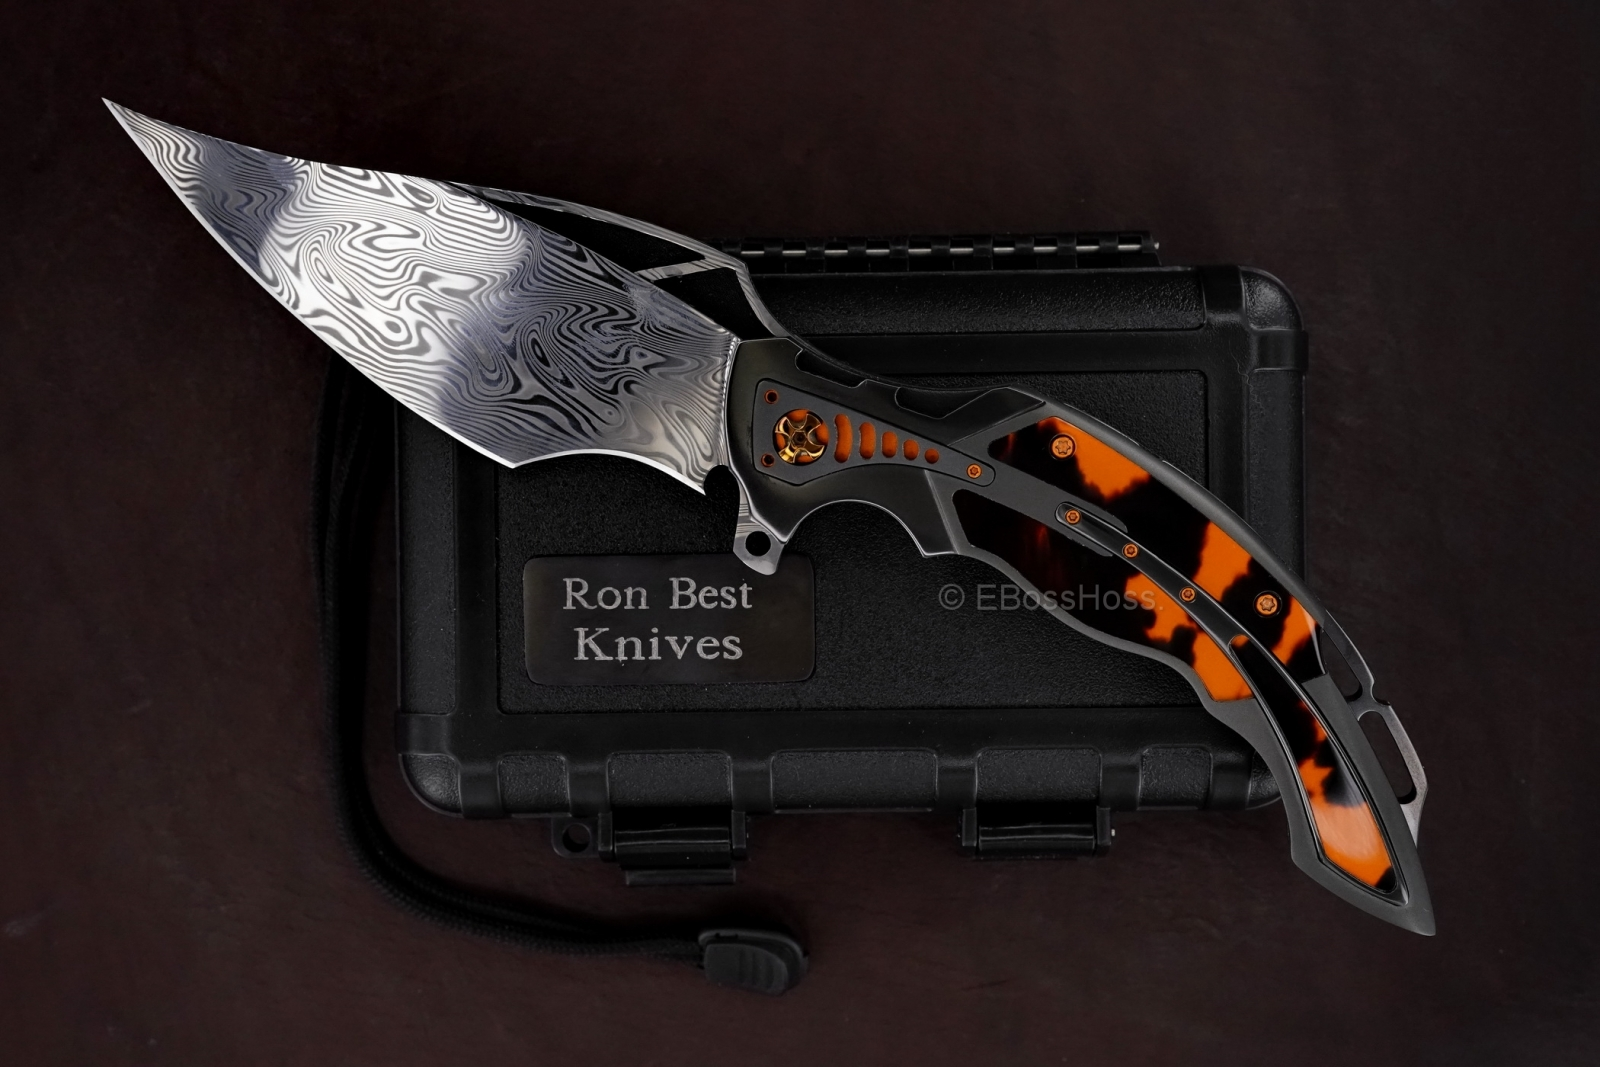 Ronald Best Custom Very Deluxe Phaze 3-2 Flipper